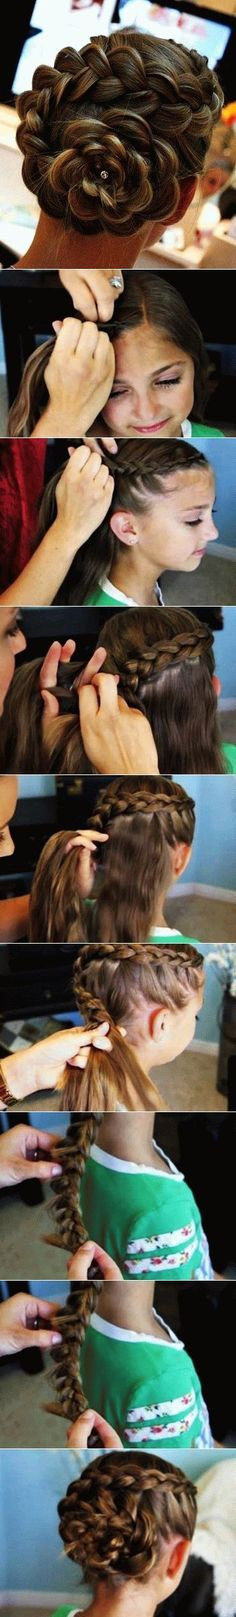 DIY Braided Flower Hair Style: